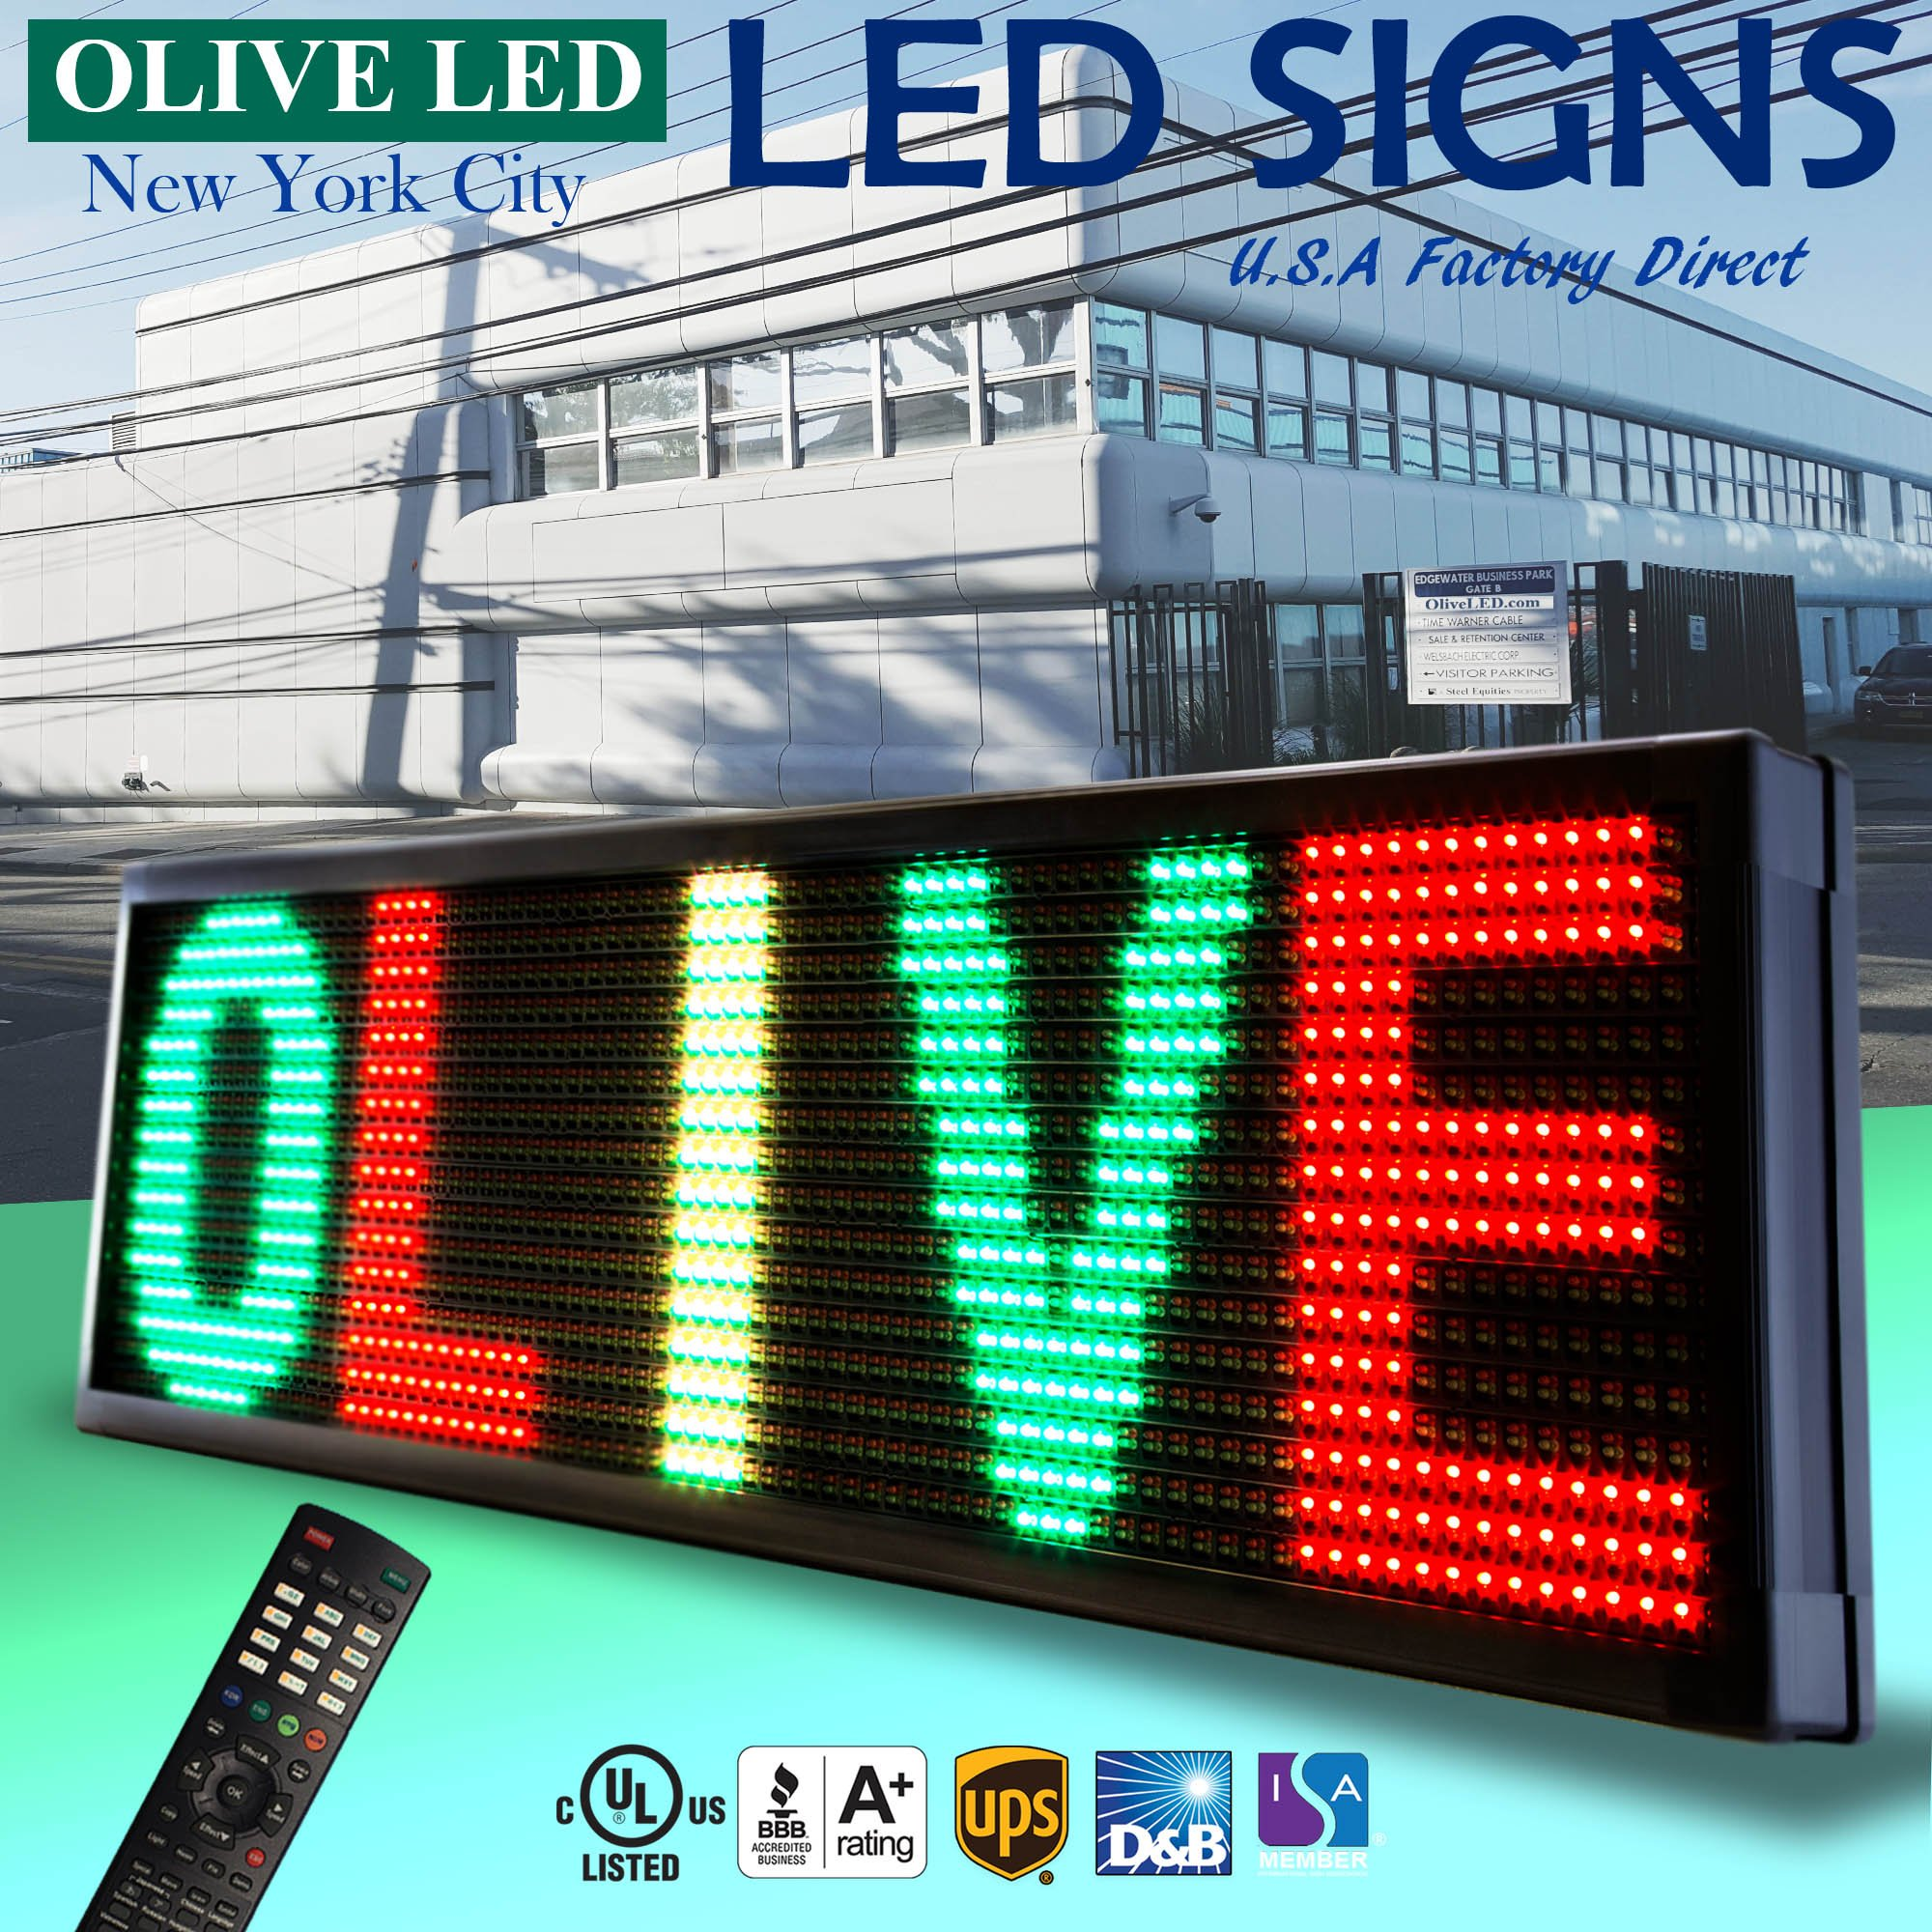 OLIVE LED Sign 3Color RGY, P20, 15''x40'' IR Programmable Scrolling Outdoor Message Display Signs EMC - Industrial Grade Business Ad machine.